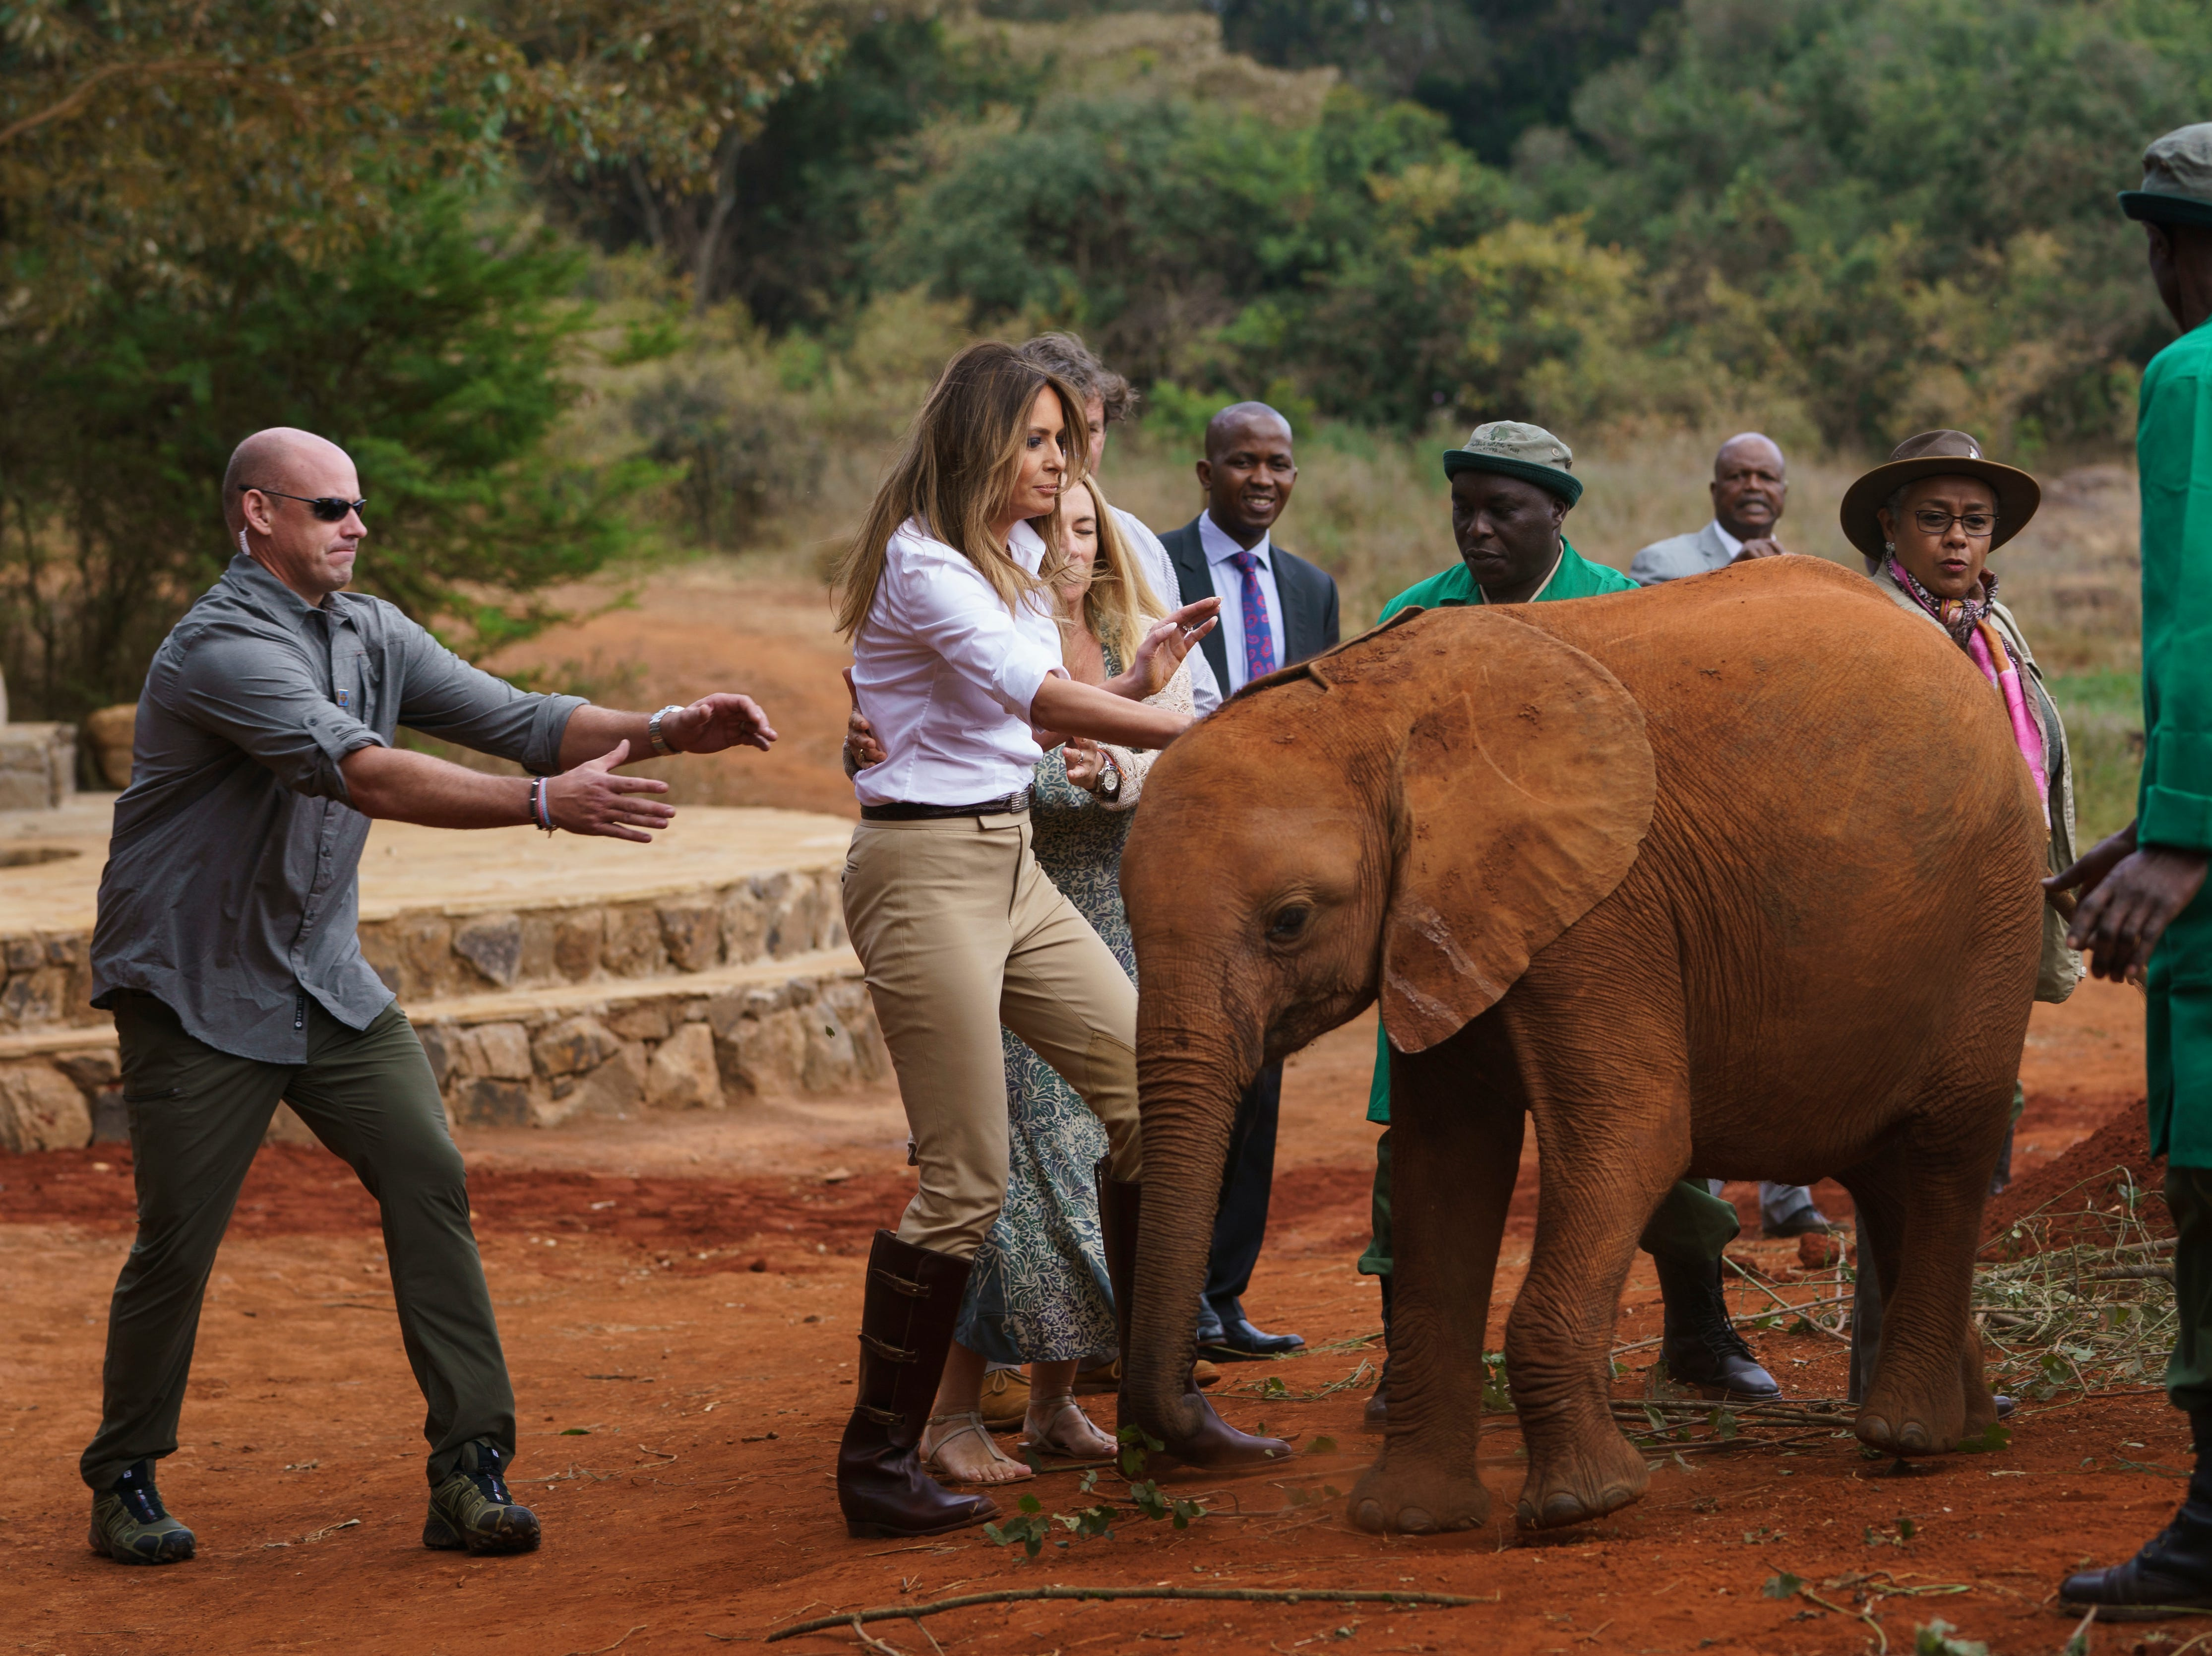 Two rambunctious baby elephants bump into First lady Melania Trump as she pets one at David Sheldrick Elephant & Rhino Orphanage at Nairobi National Park in Nairobi, Kenya, Oct. 5, 2018. Mrs. Trump is visiting Africa on her first big solo international trip.